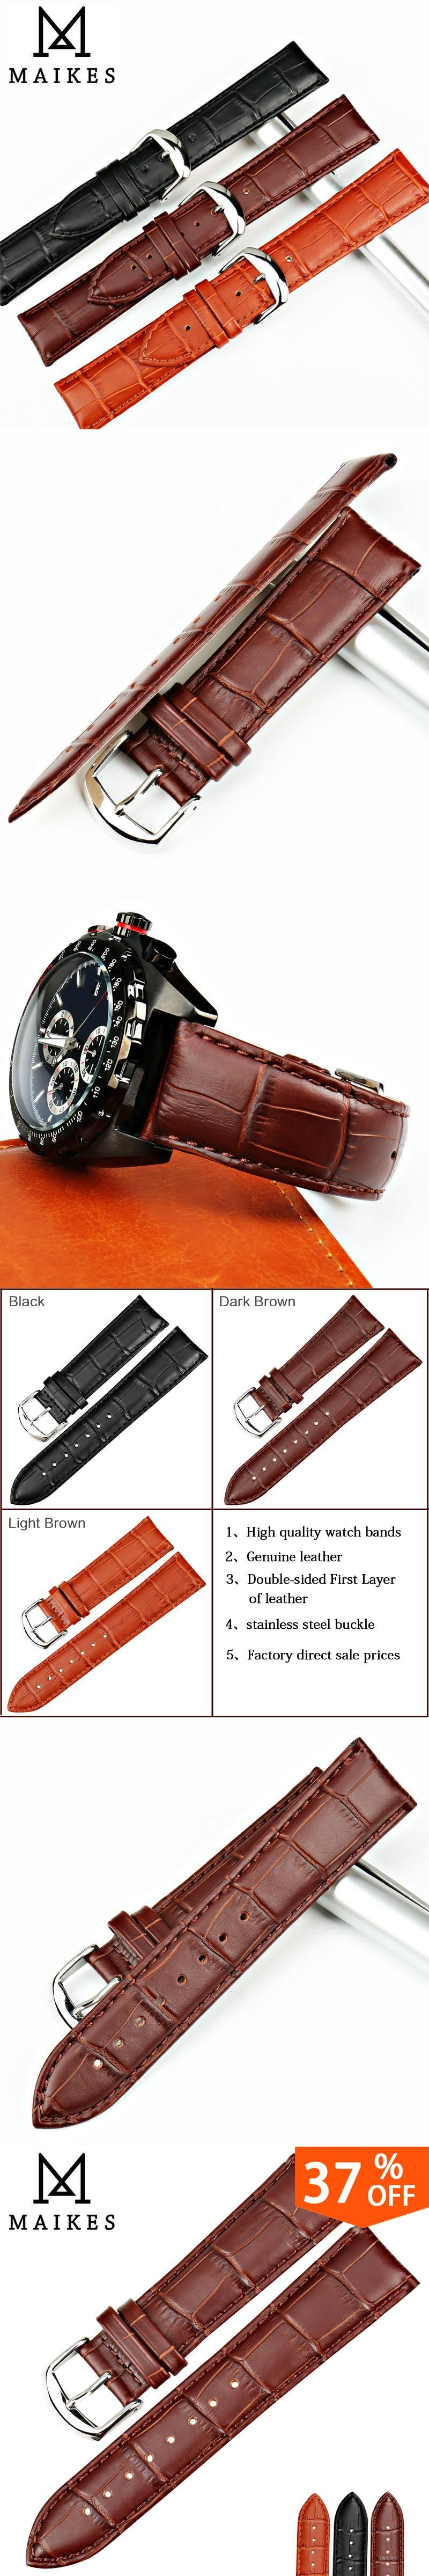 7399545fb21 MAIKES New Design Watch Accessories Genuine Cow Leather Watch Strap 16 18  20 22 24mm Brown